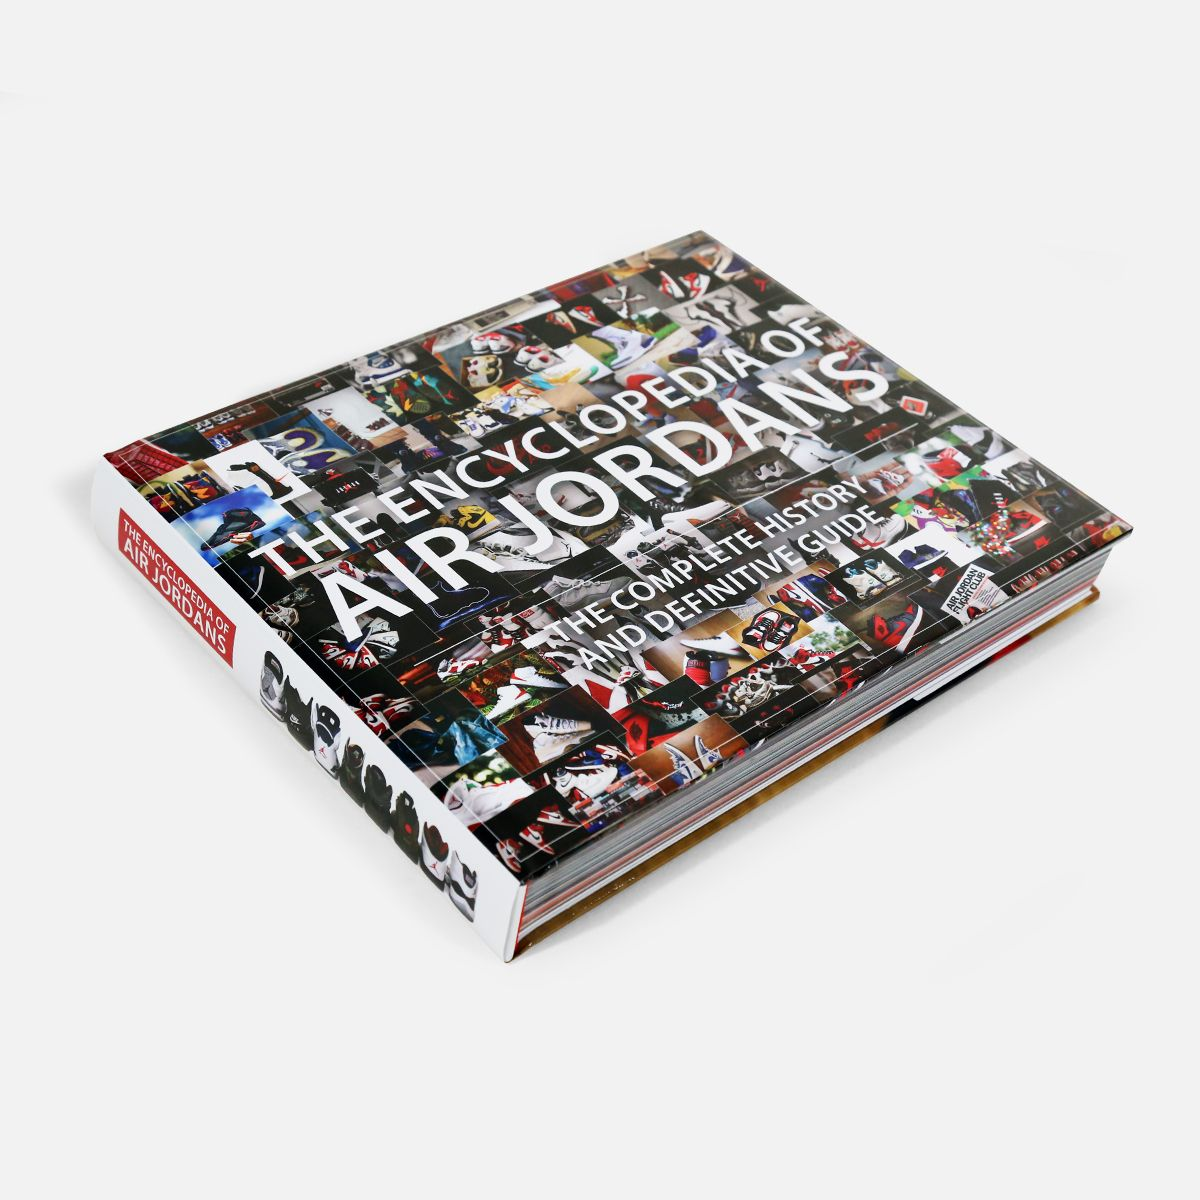 air jordan encyclopedia book